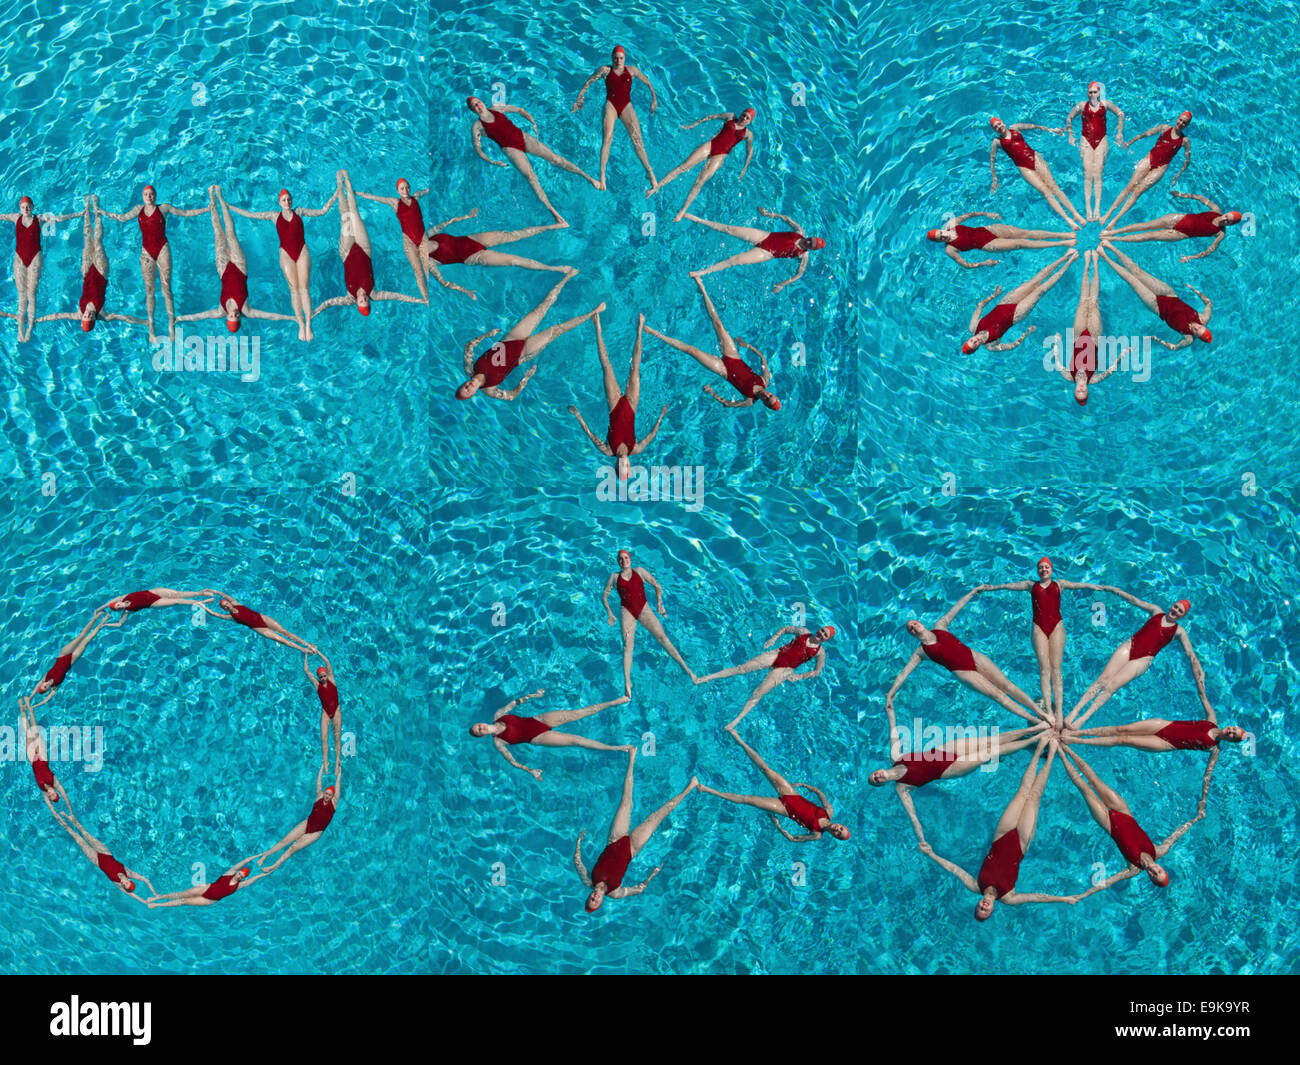 Collage of female synchronized swimmers forming various shape in swimming pool - Stock Image